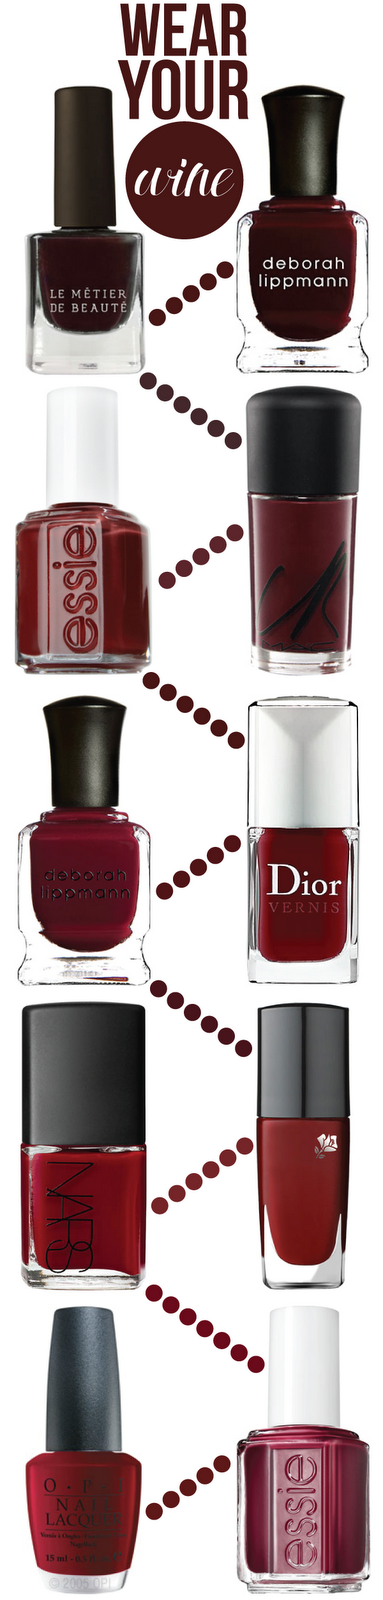 wear your wine: 10 nail shades for fall first row: Le Métier de ...